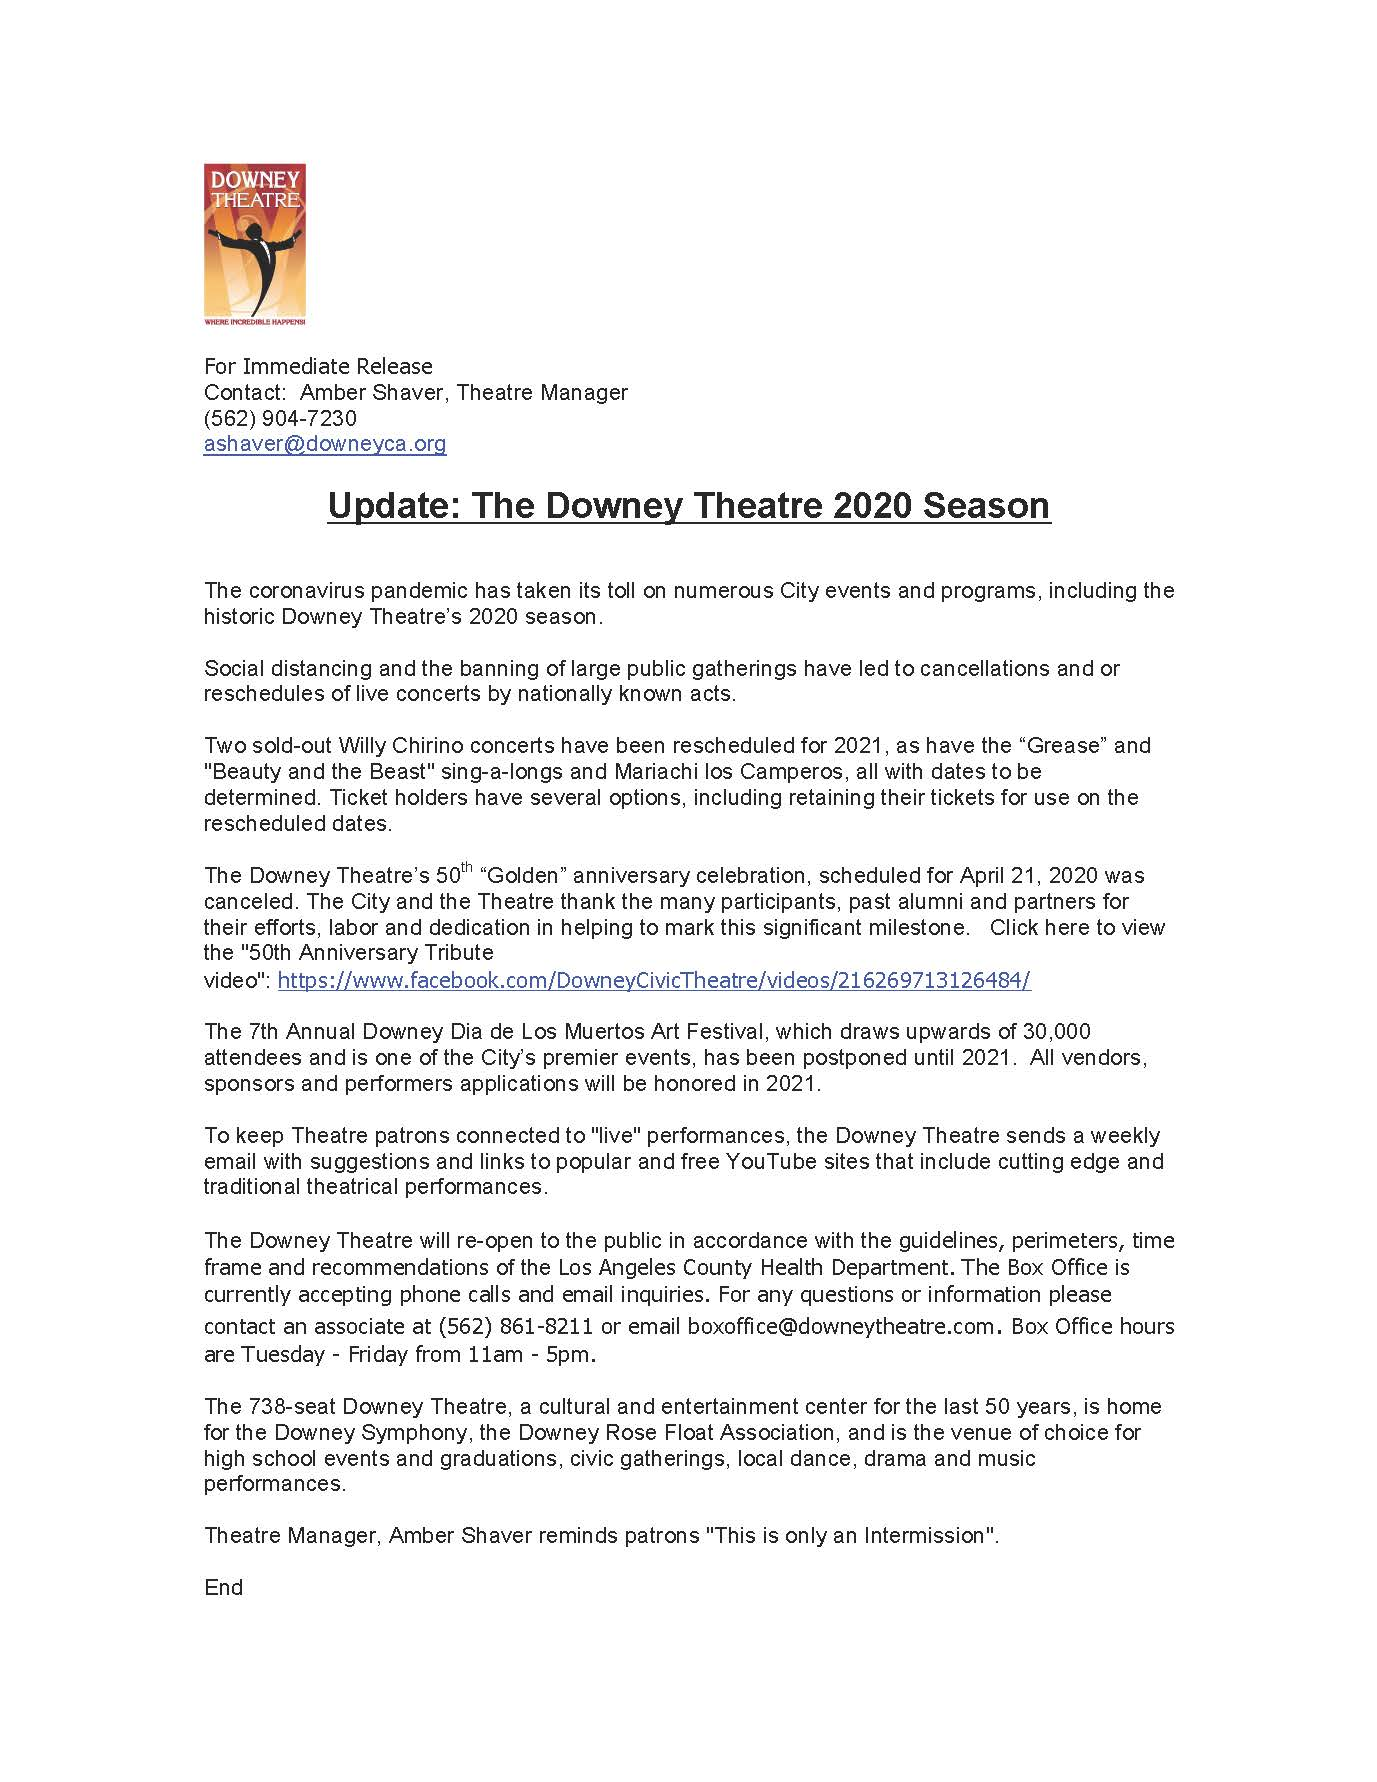 Update on the Downey Theatre 2020 Season